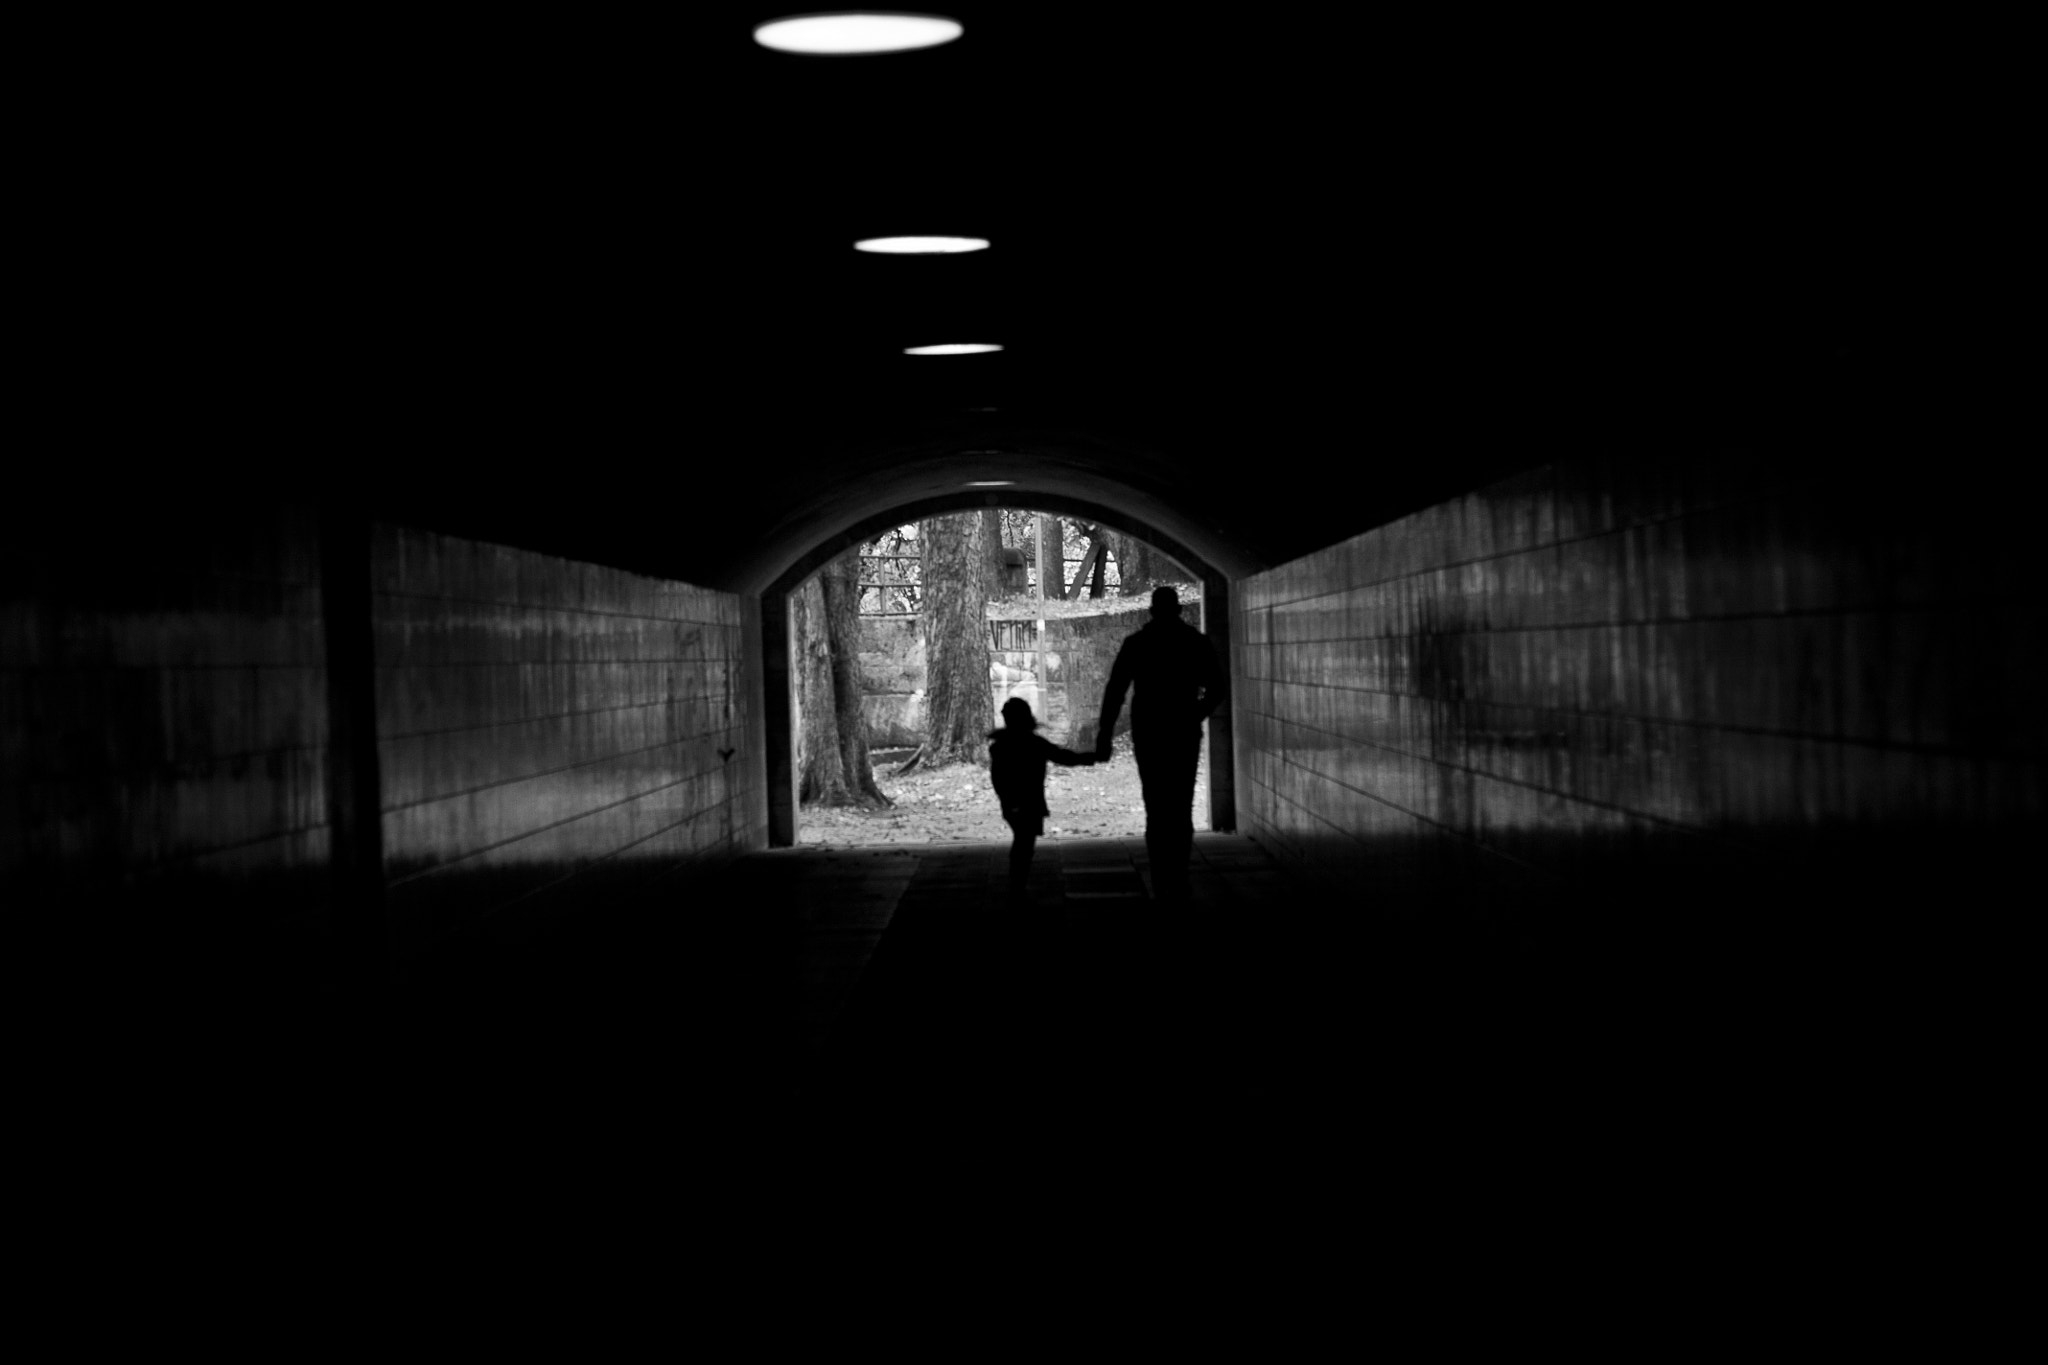 Photograph Tunnelblick by Markus Wi on 500px